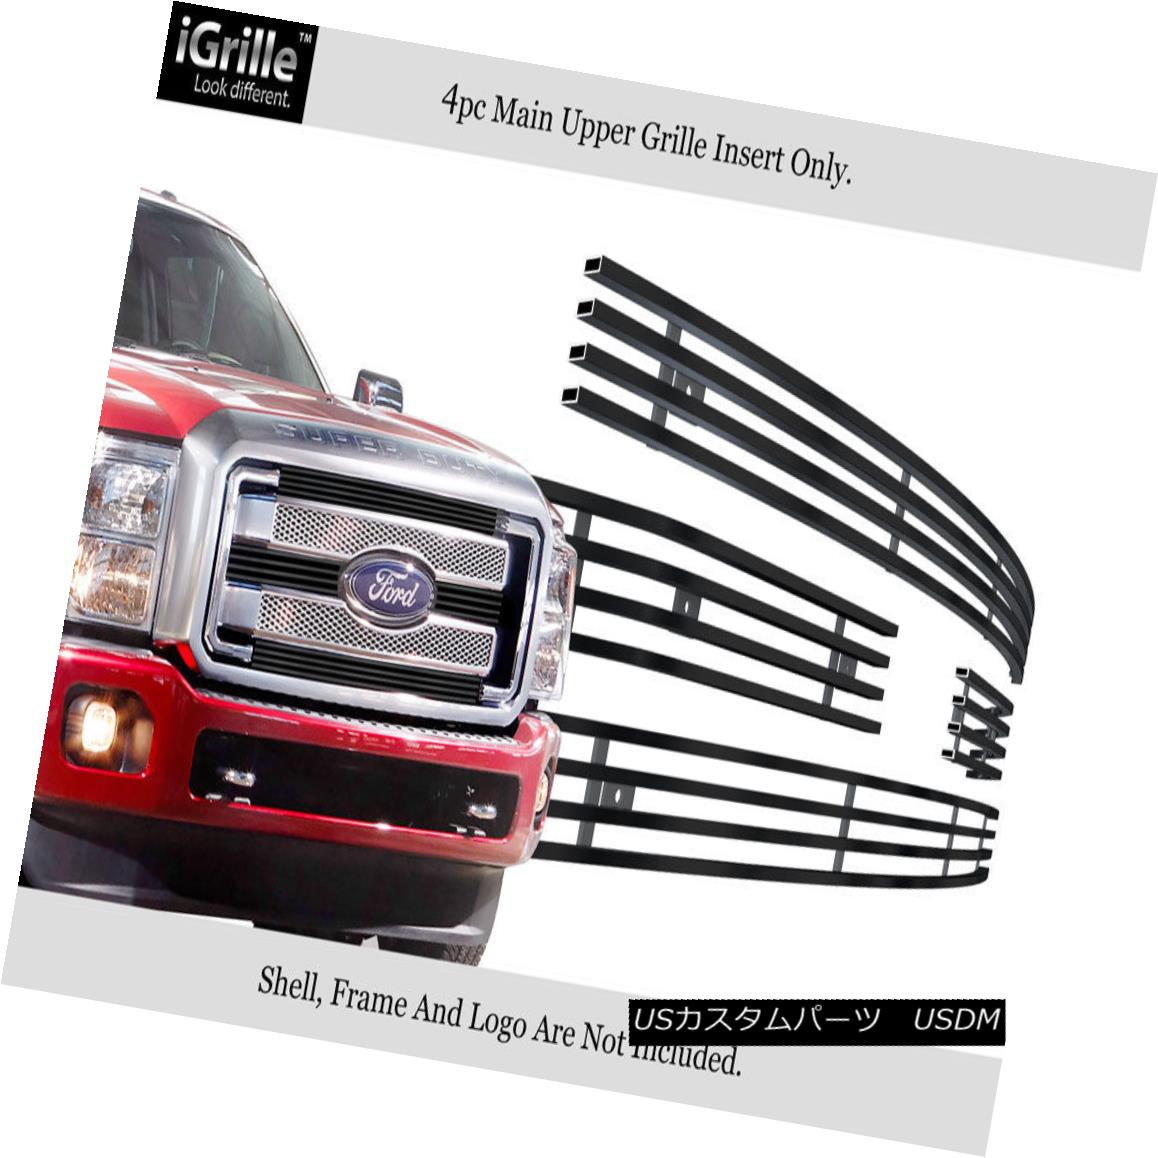 グリル For 2011-2016 Ford F250/F350 SD XLT/King Ranch Black Stainless Billet Grille 2011-2016 Ford F250 / F350 SD XLT / King Ranchブラックステンレスビレットグリル